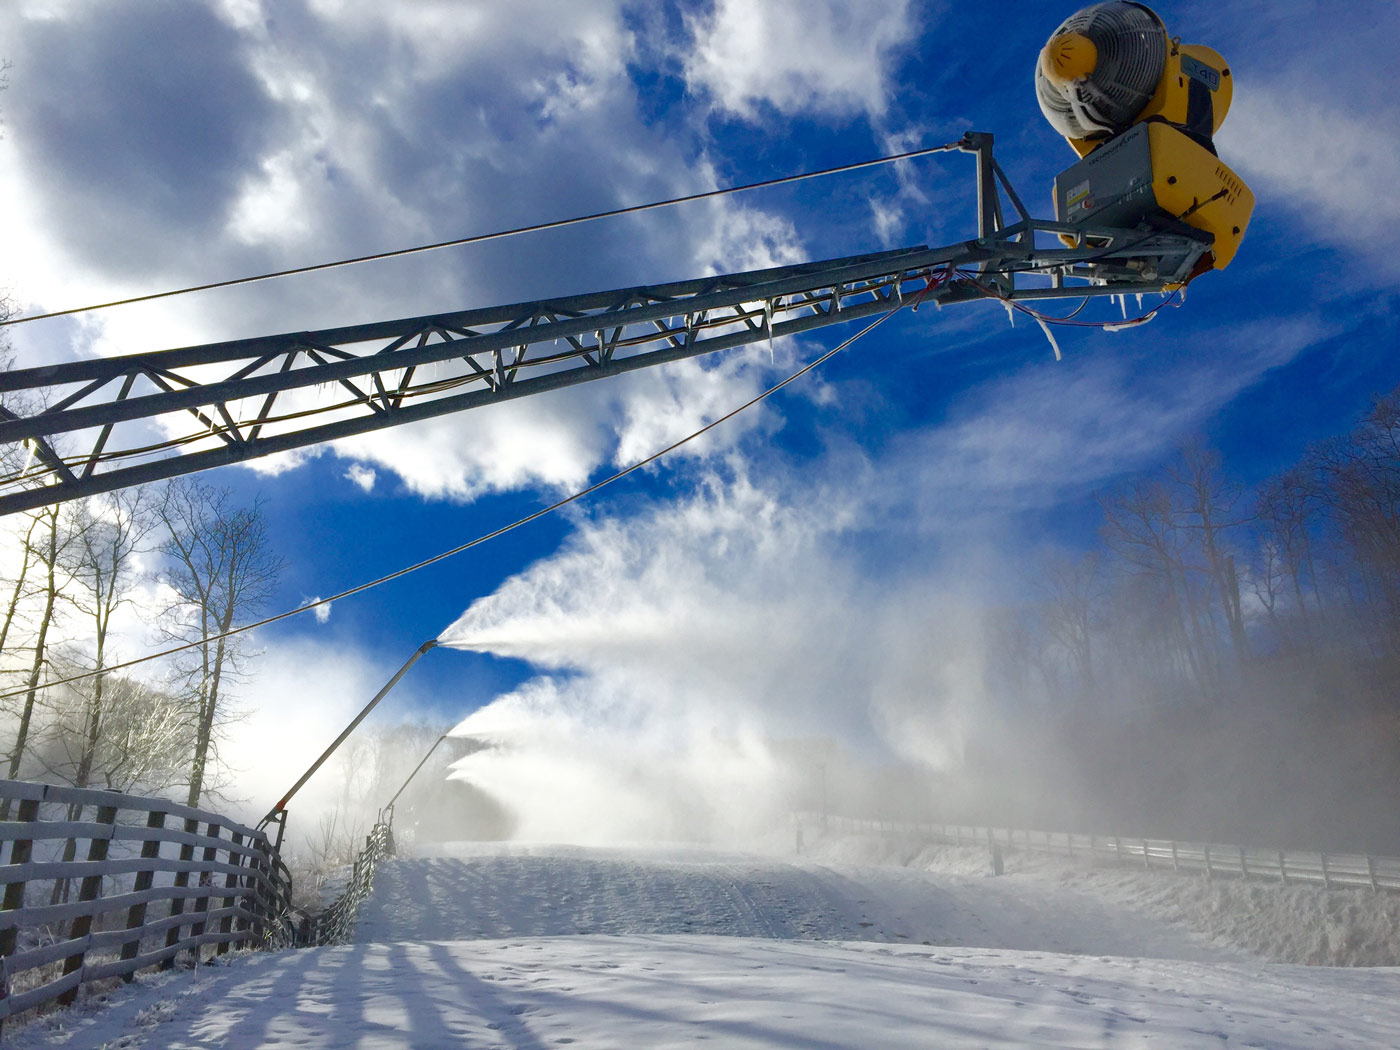 snowmaking picture from december 8, 2016